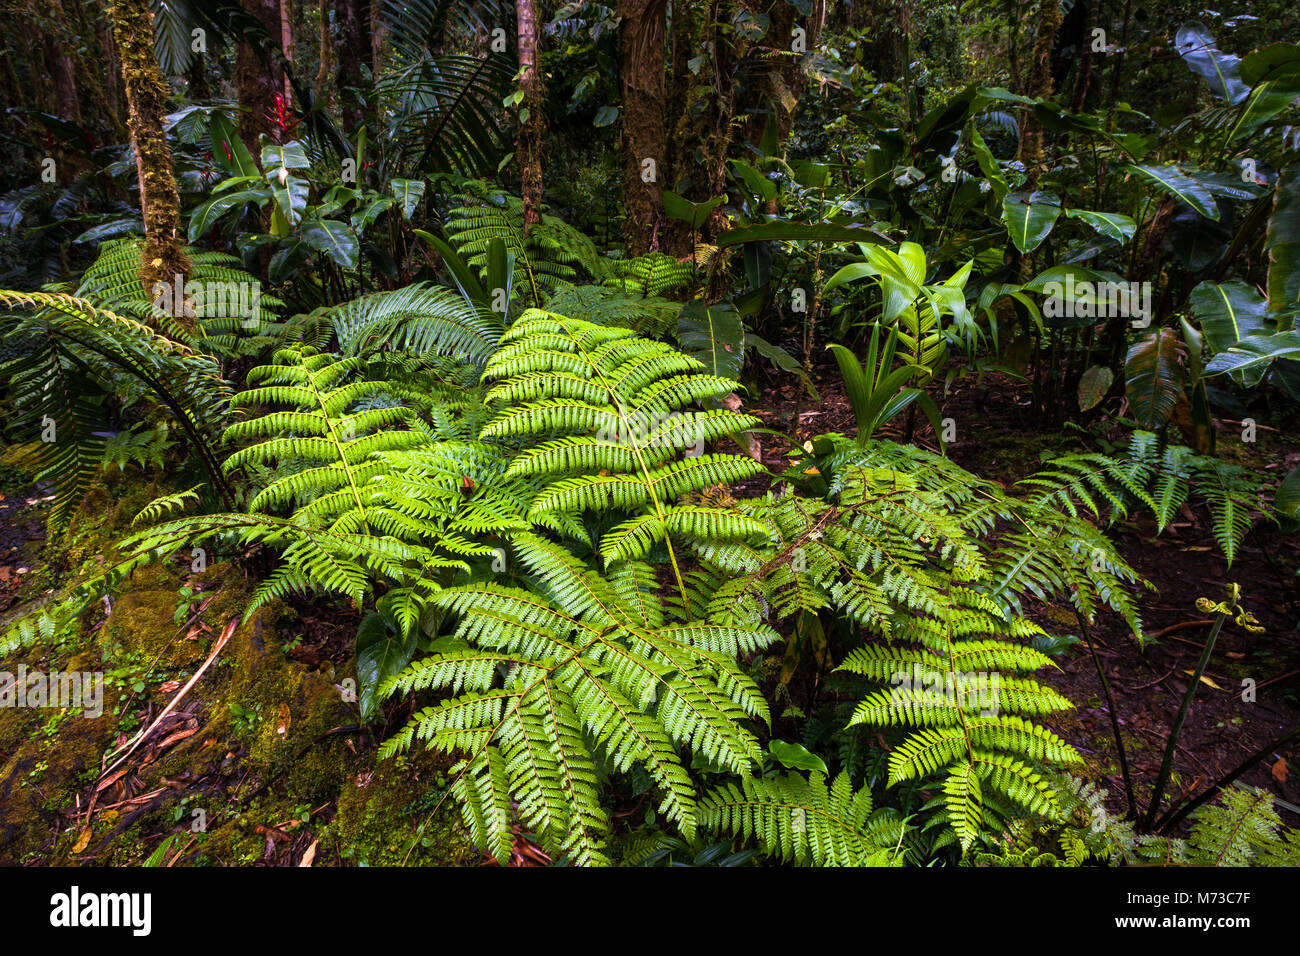 Vegetation on the cloud forest floor in La Amistad National Park, Chiriqui province, Republic of Panama. Stock Photo